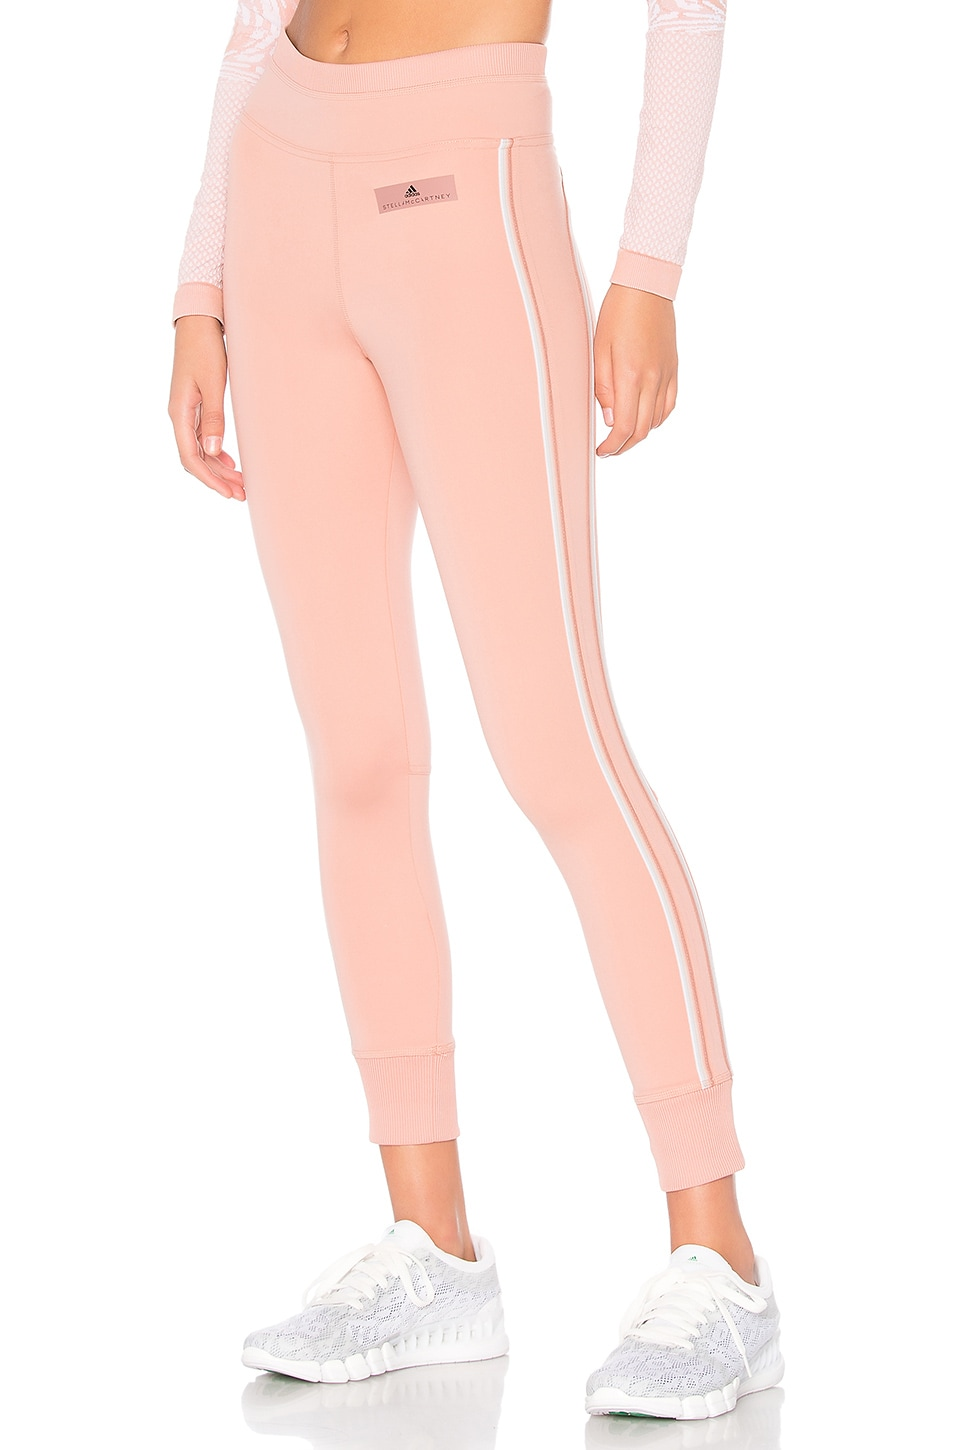 adidas by Stella McCartney Comfort Legging in Cinnamon Blush